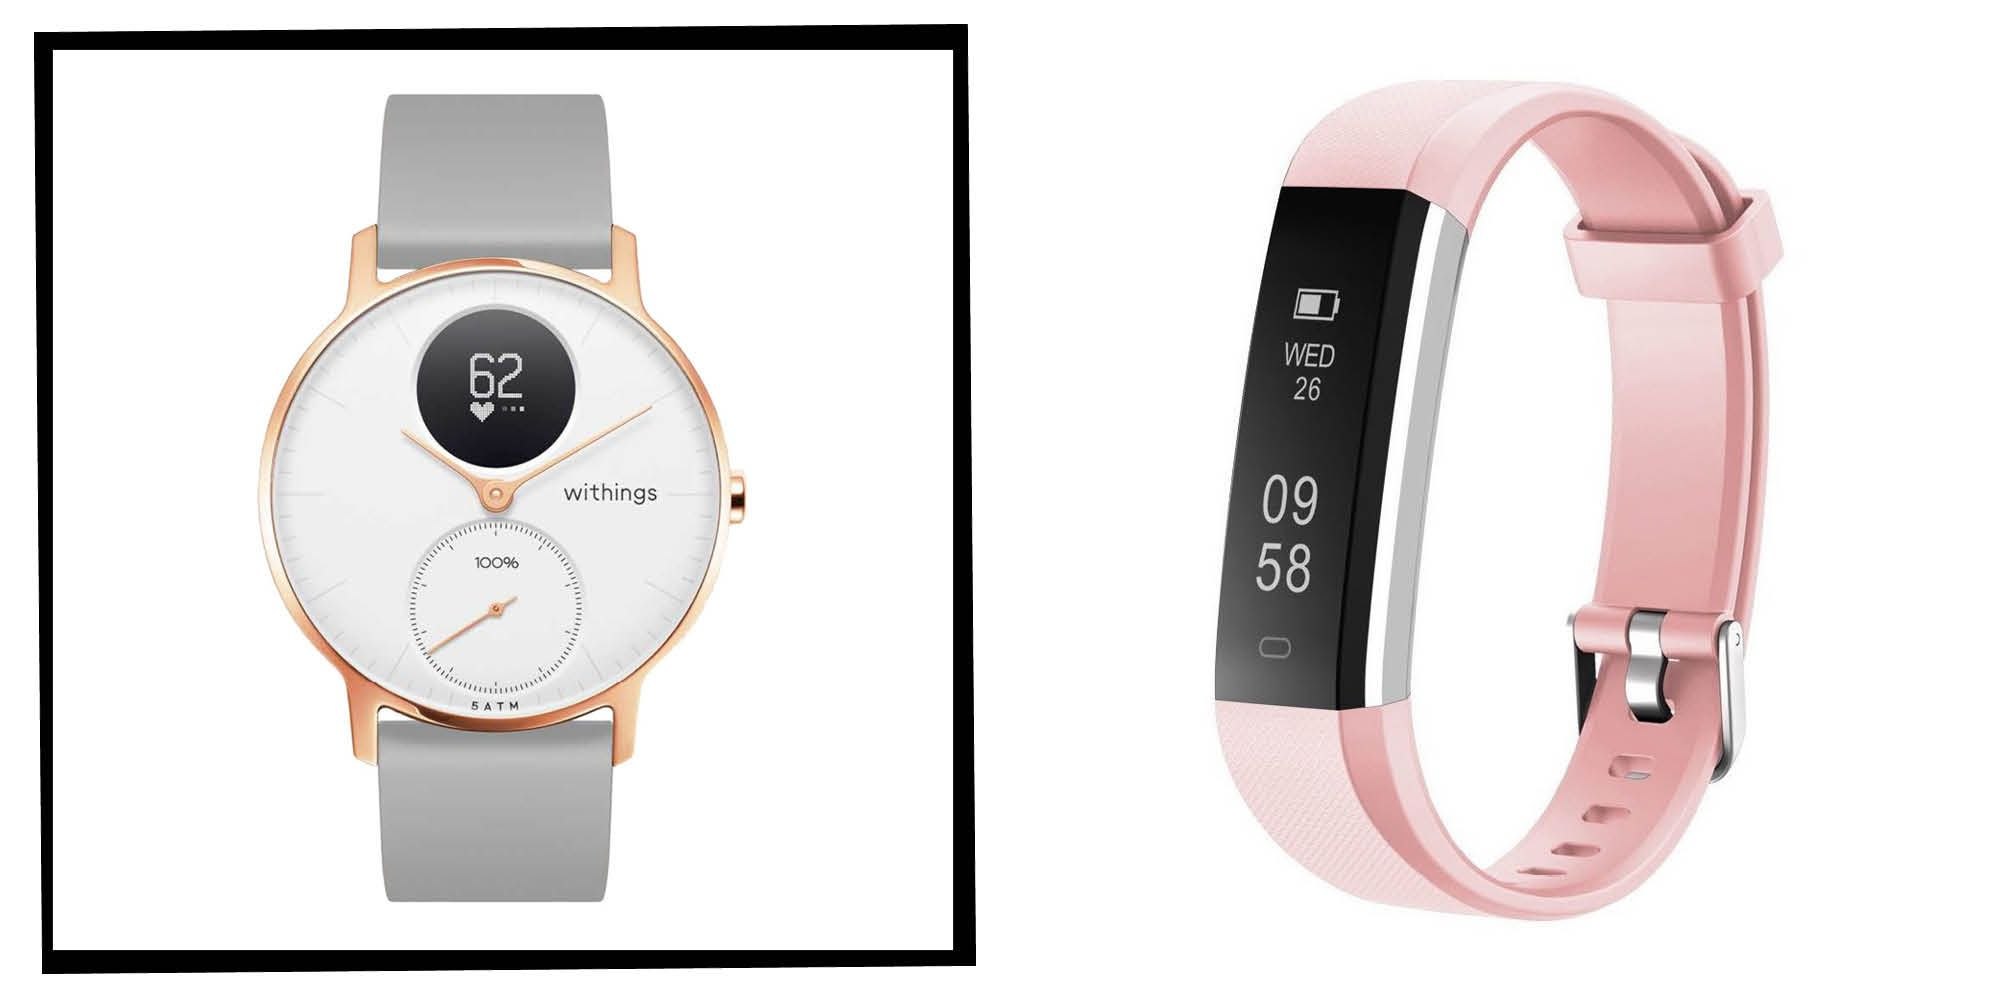 Amazon Prime Day: 5 Best Fitbits And Fitness Trackers In The Sale